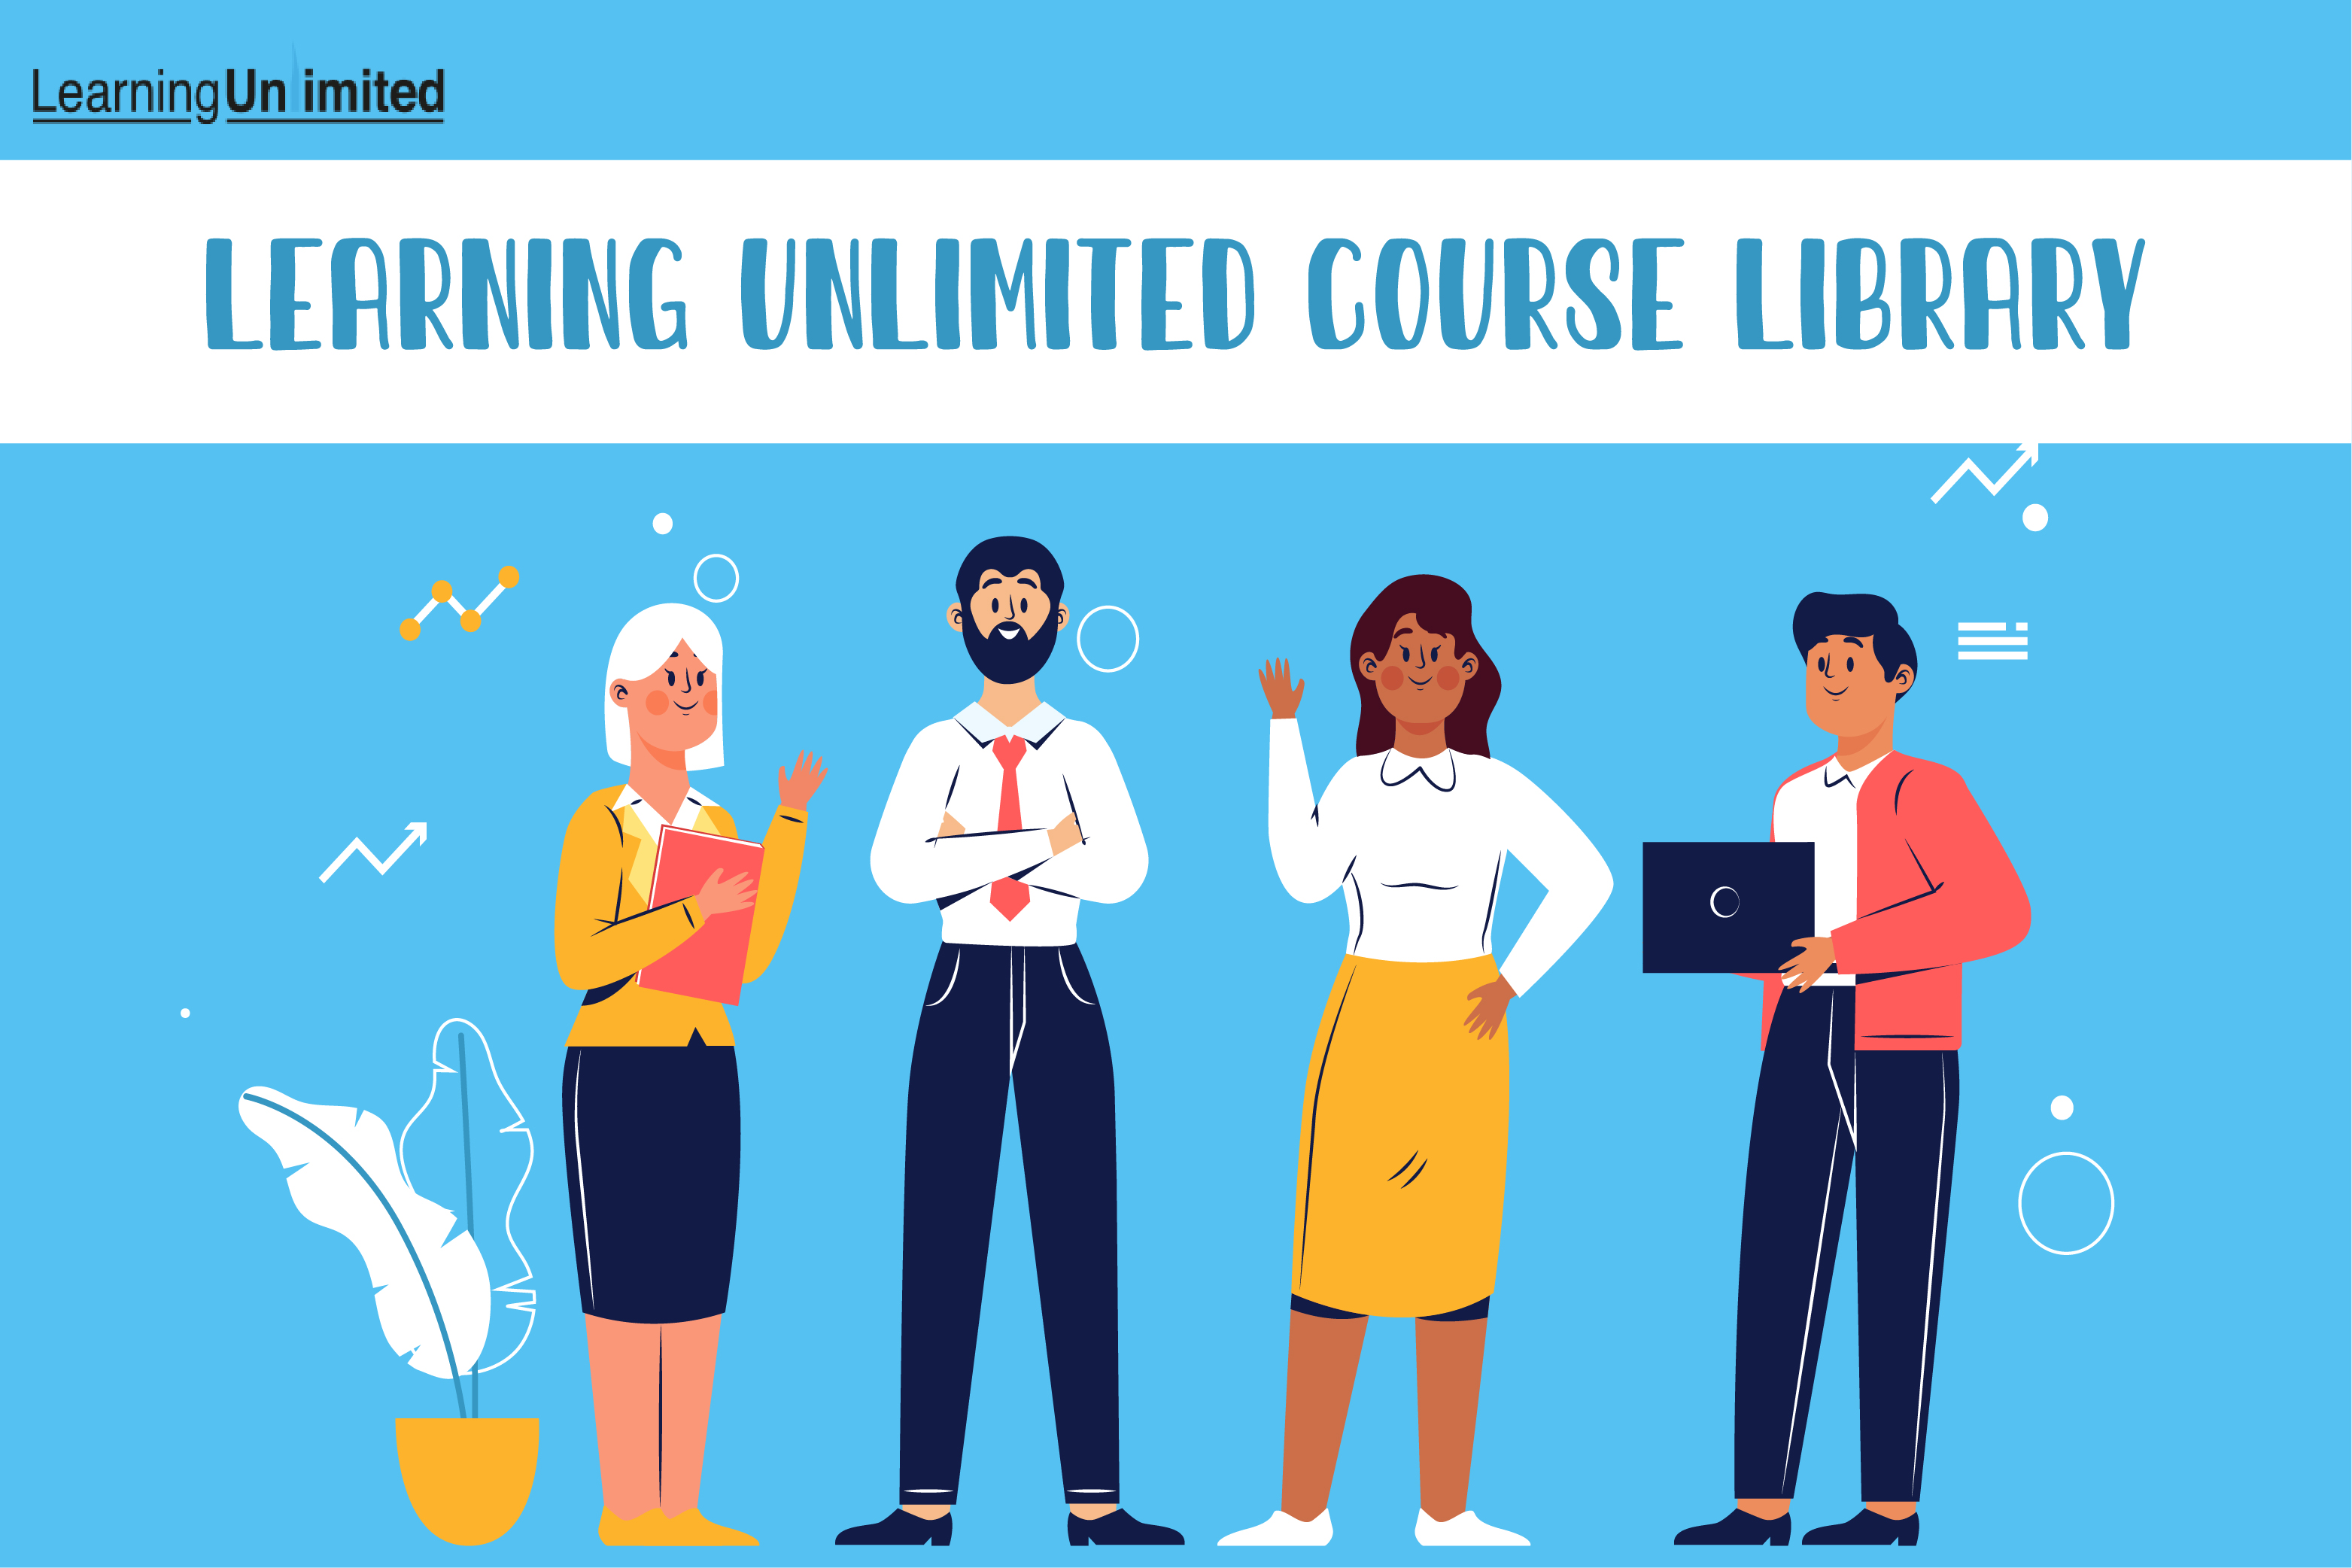 Learning Unlimited Course Library